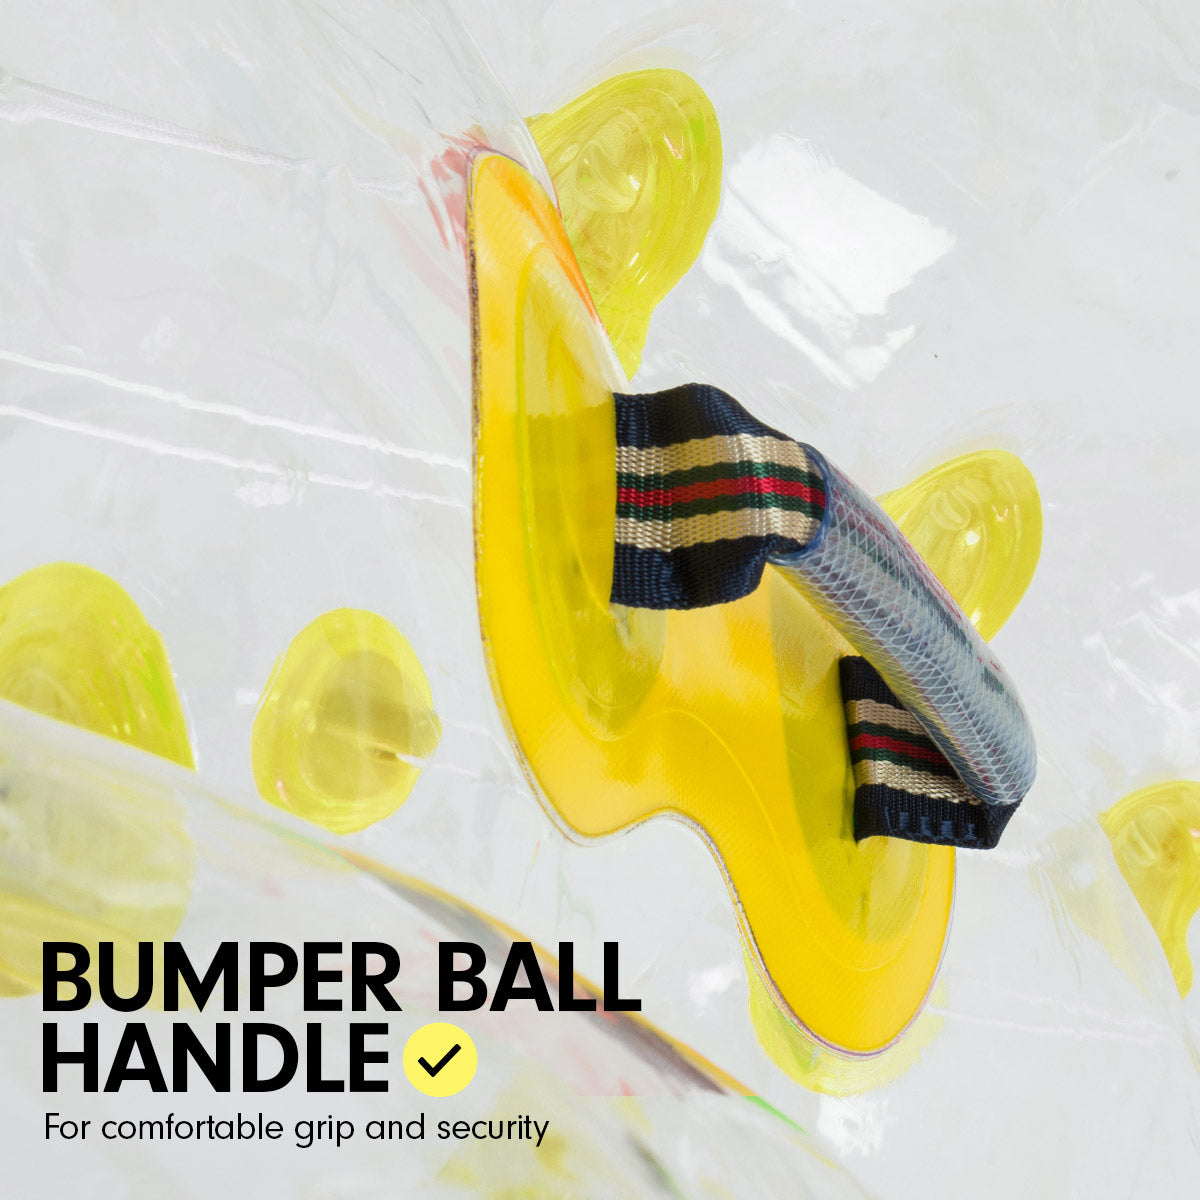 1.2m Inflatable Bumper Ball Body Bubble Outdoor Transparent - Yellow